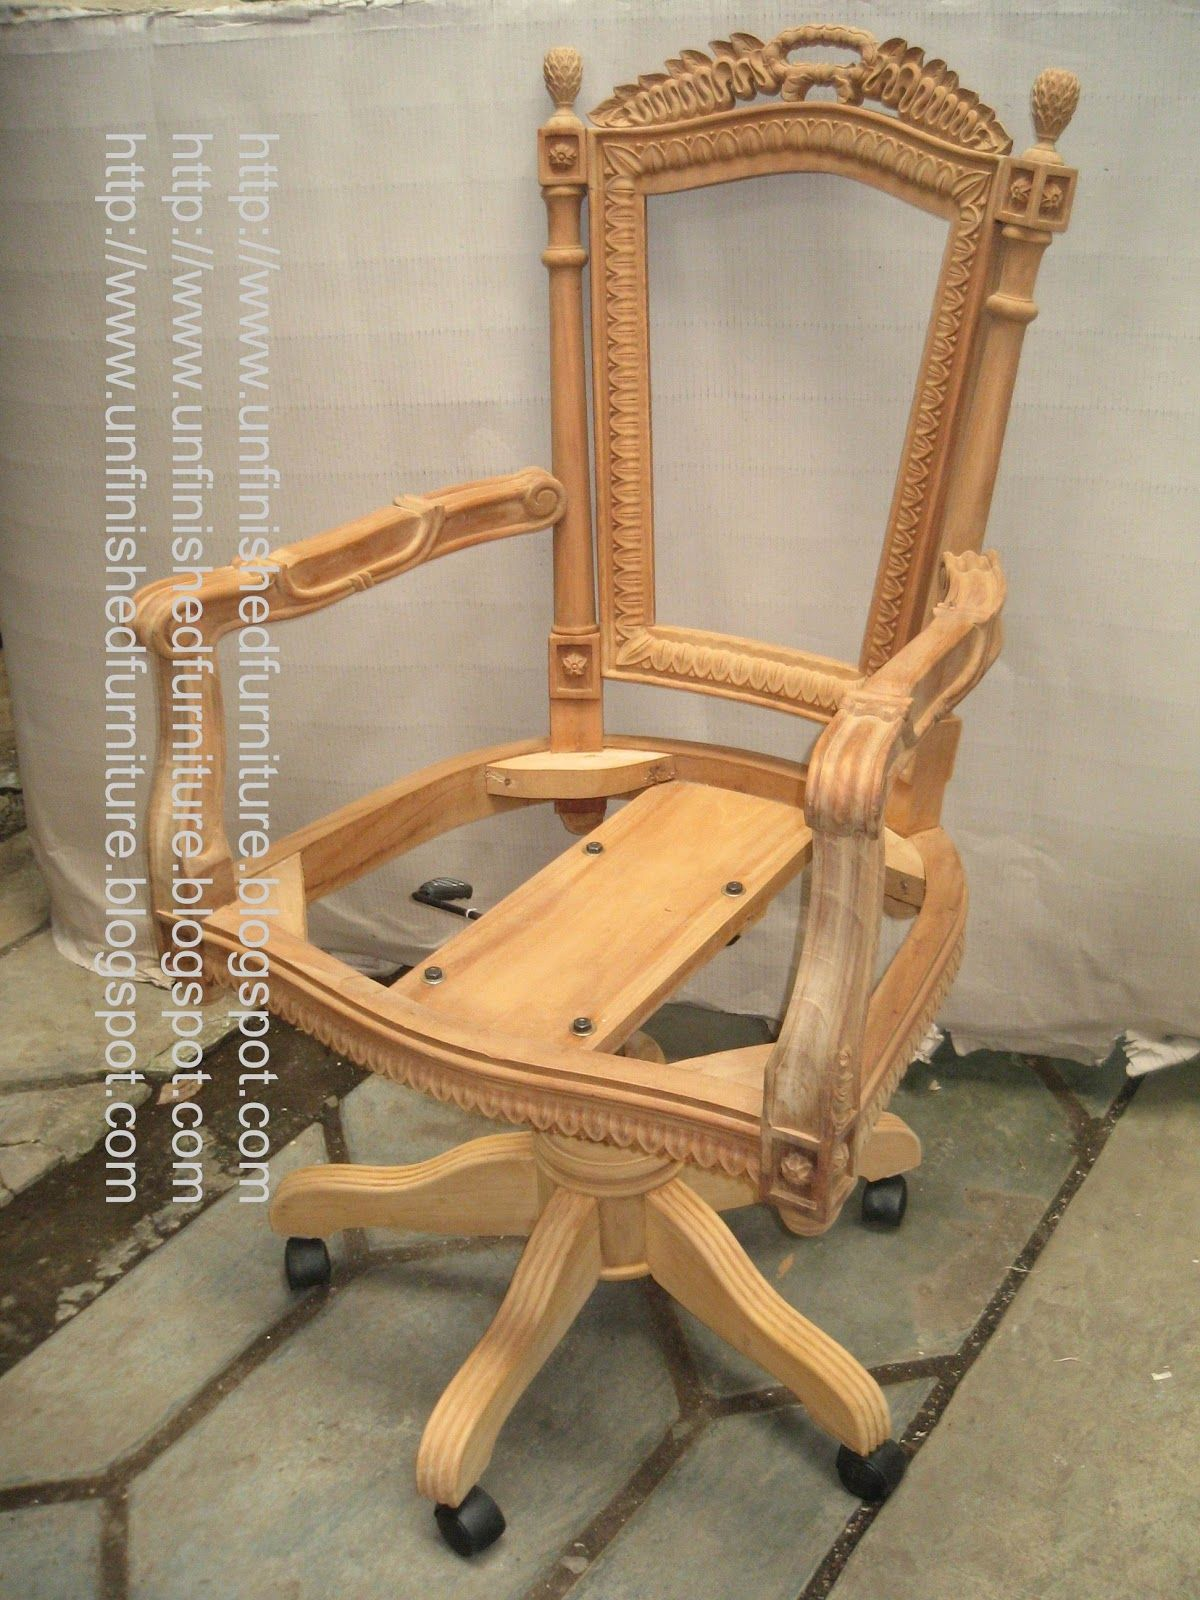 Unfinished classic furniture classic chair wooden frame classic